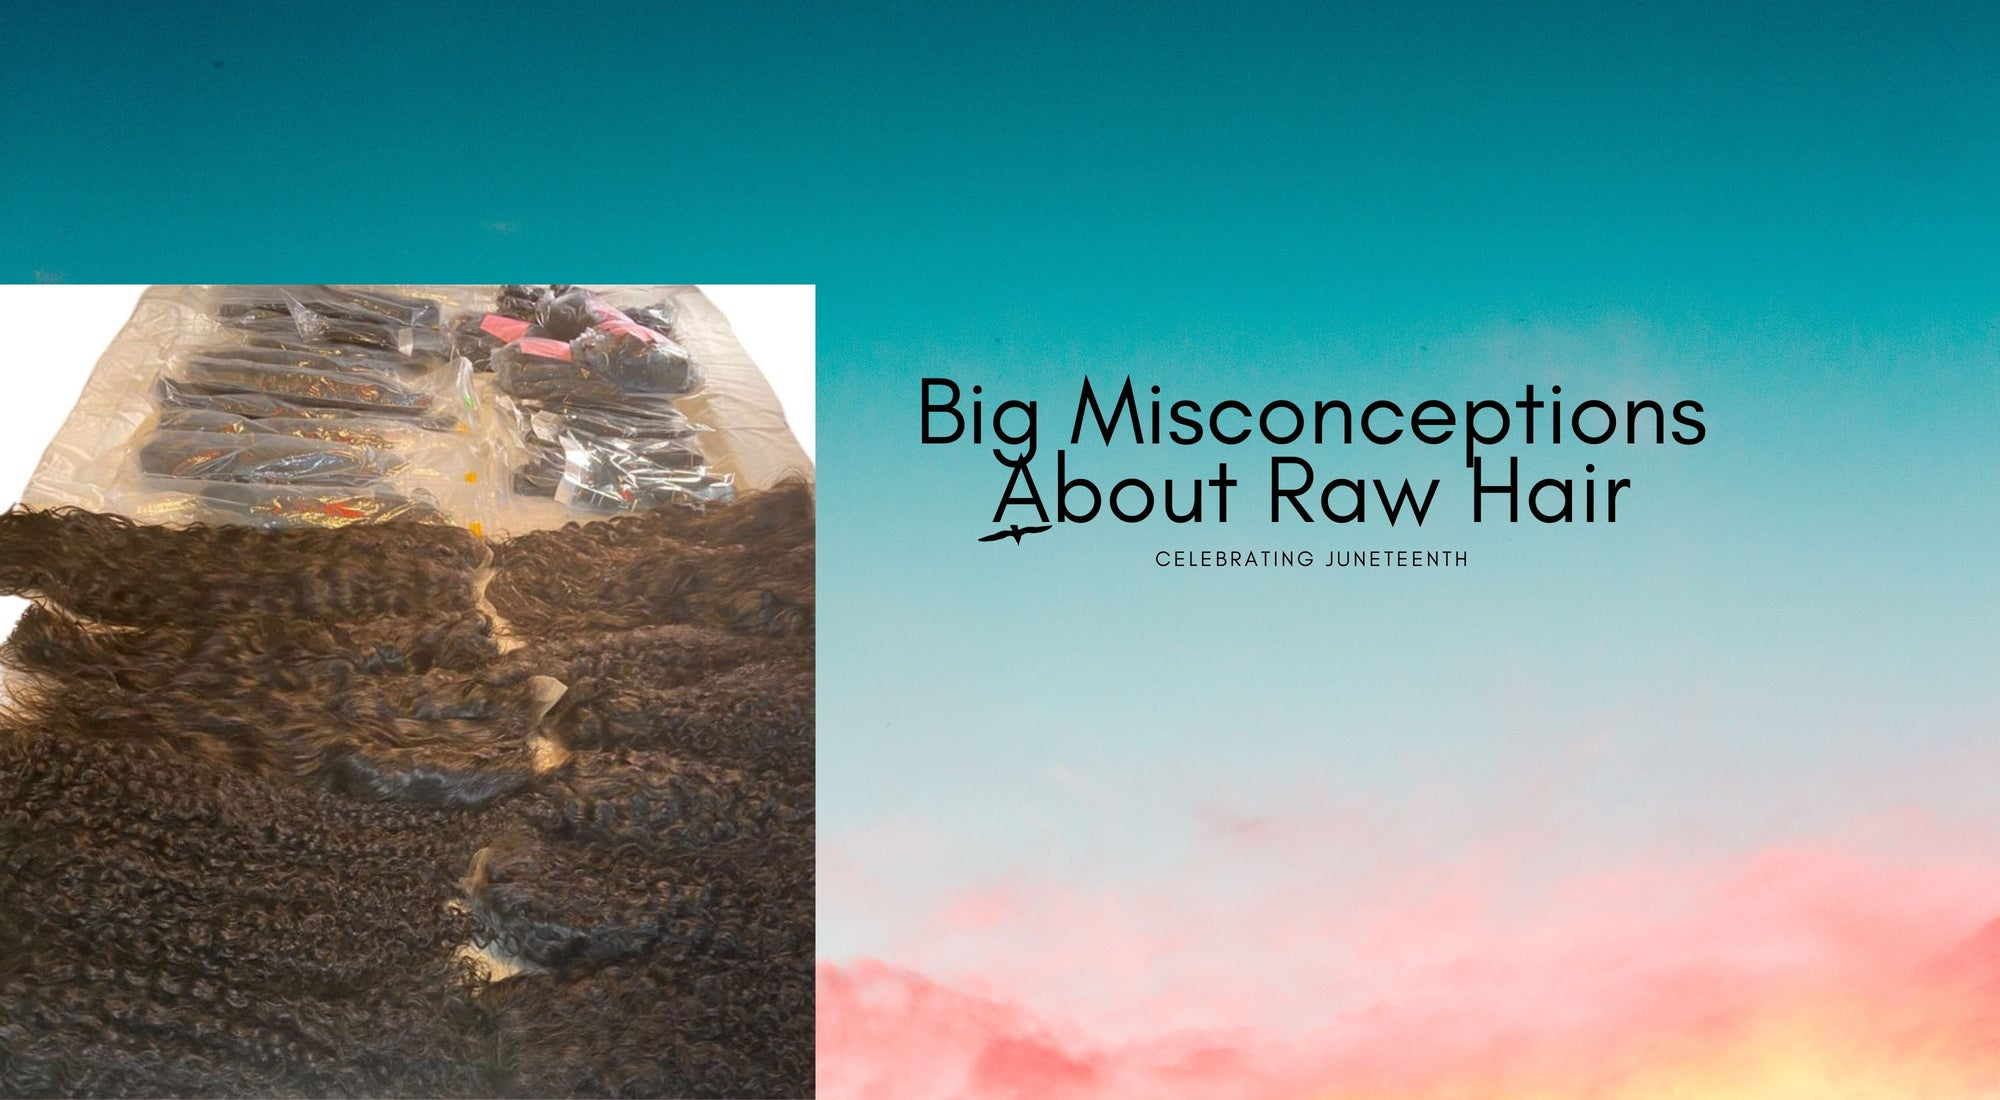 Big Misconceptions About Raw Hair